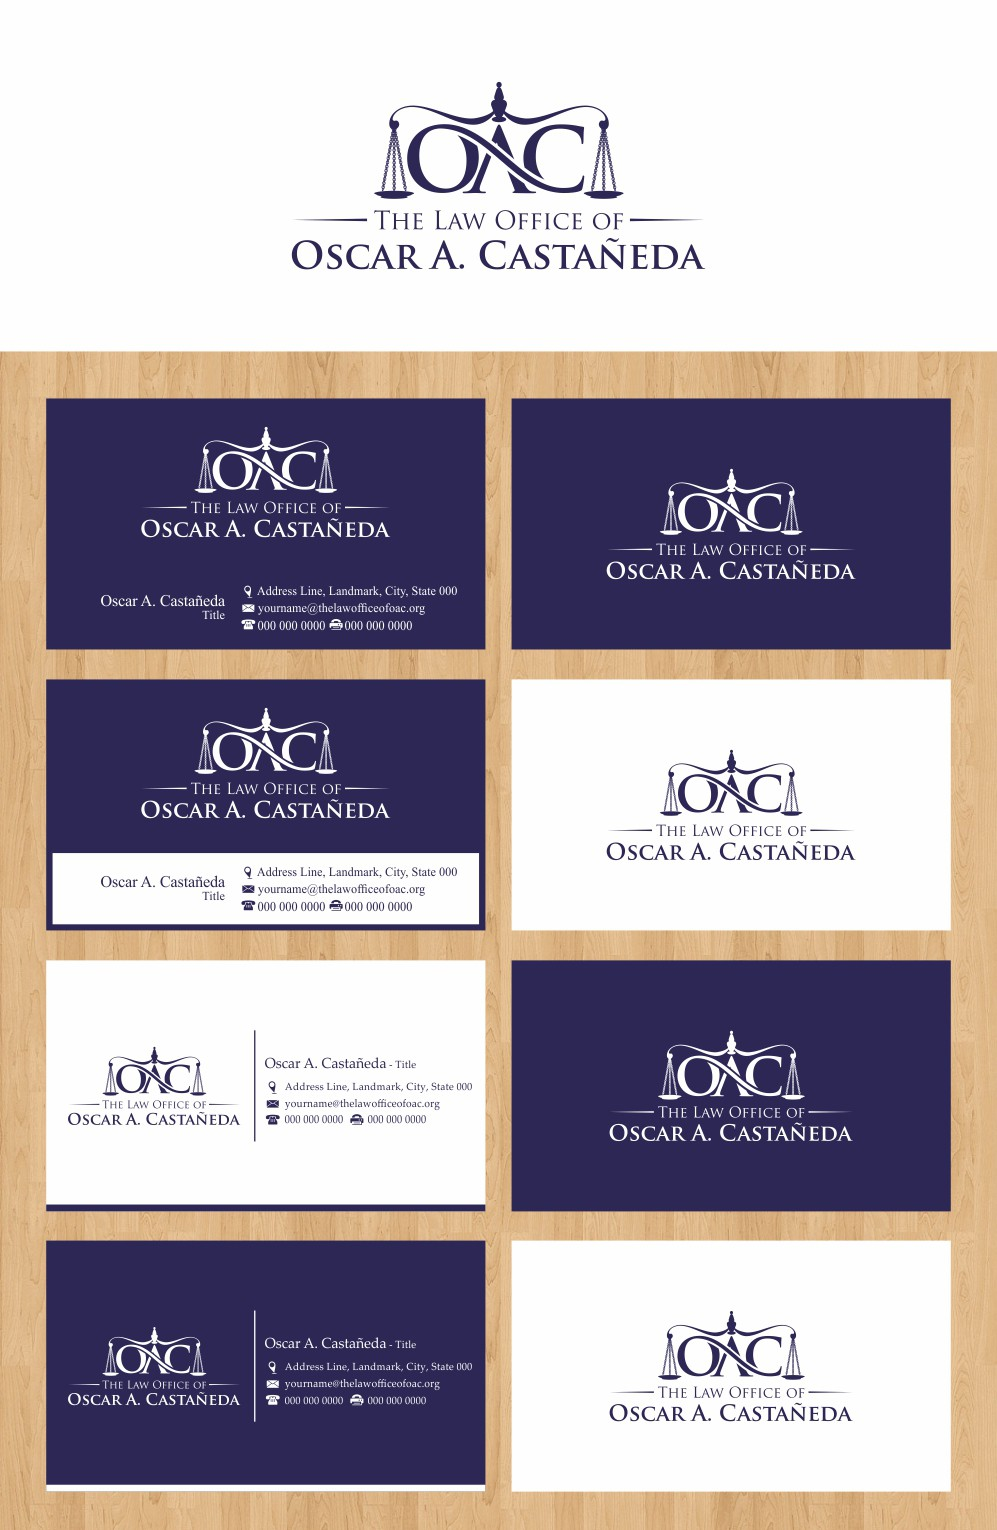 The Law Office of Oscar A. Castañeda.  Emphasis on the initials O.A.C. needs a new logo and business card